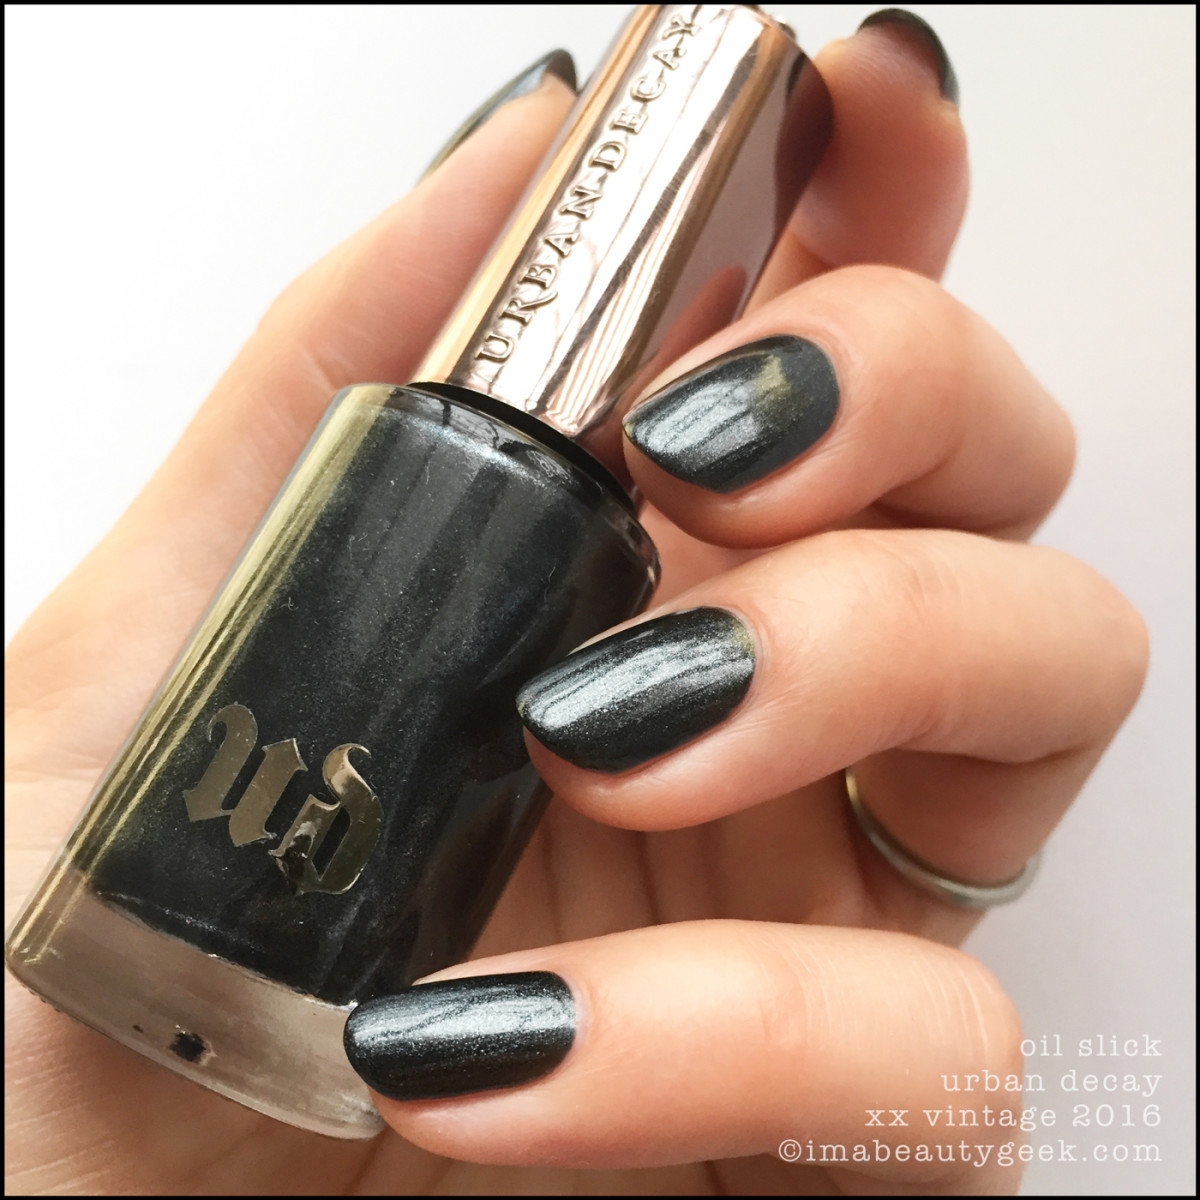 URBAN DECAY XX VINTAGE NAIL POLISH COLLECTION SWATCHES & REVIEW ...